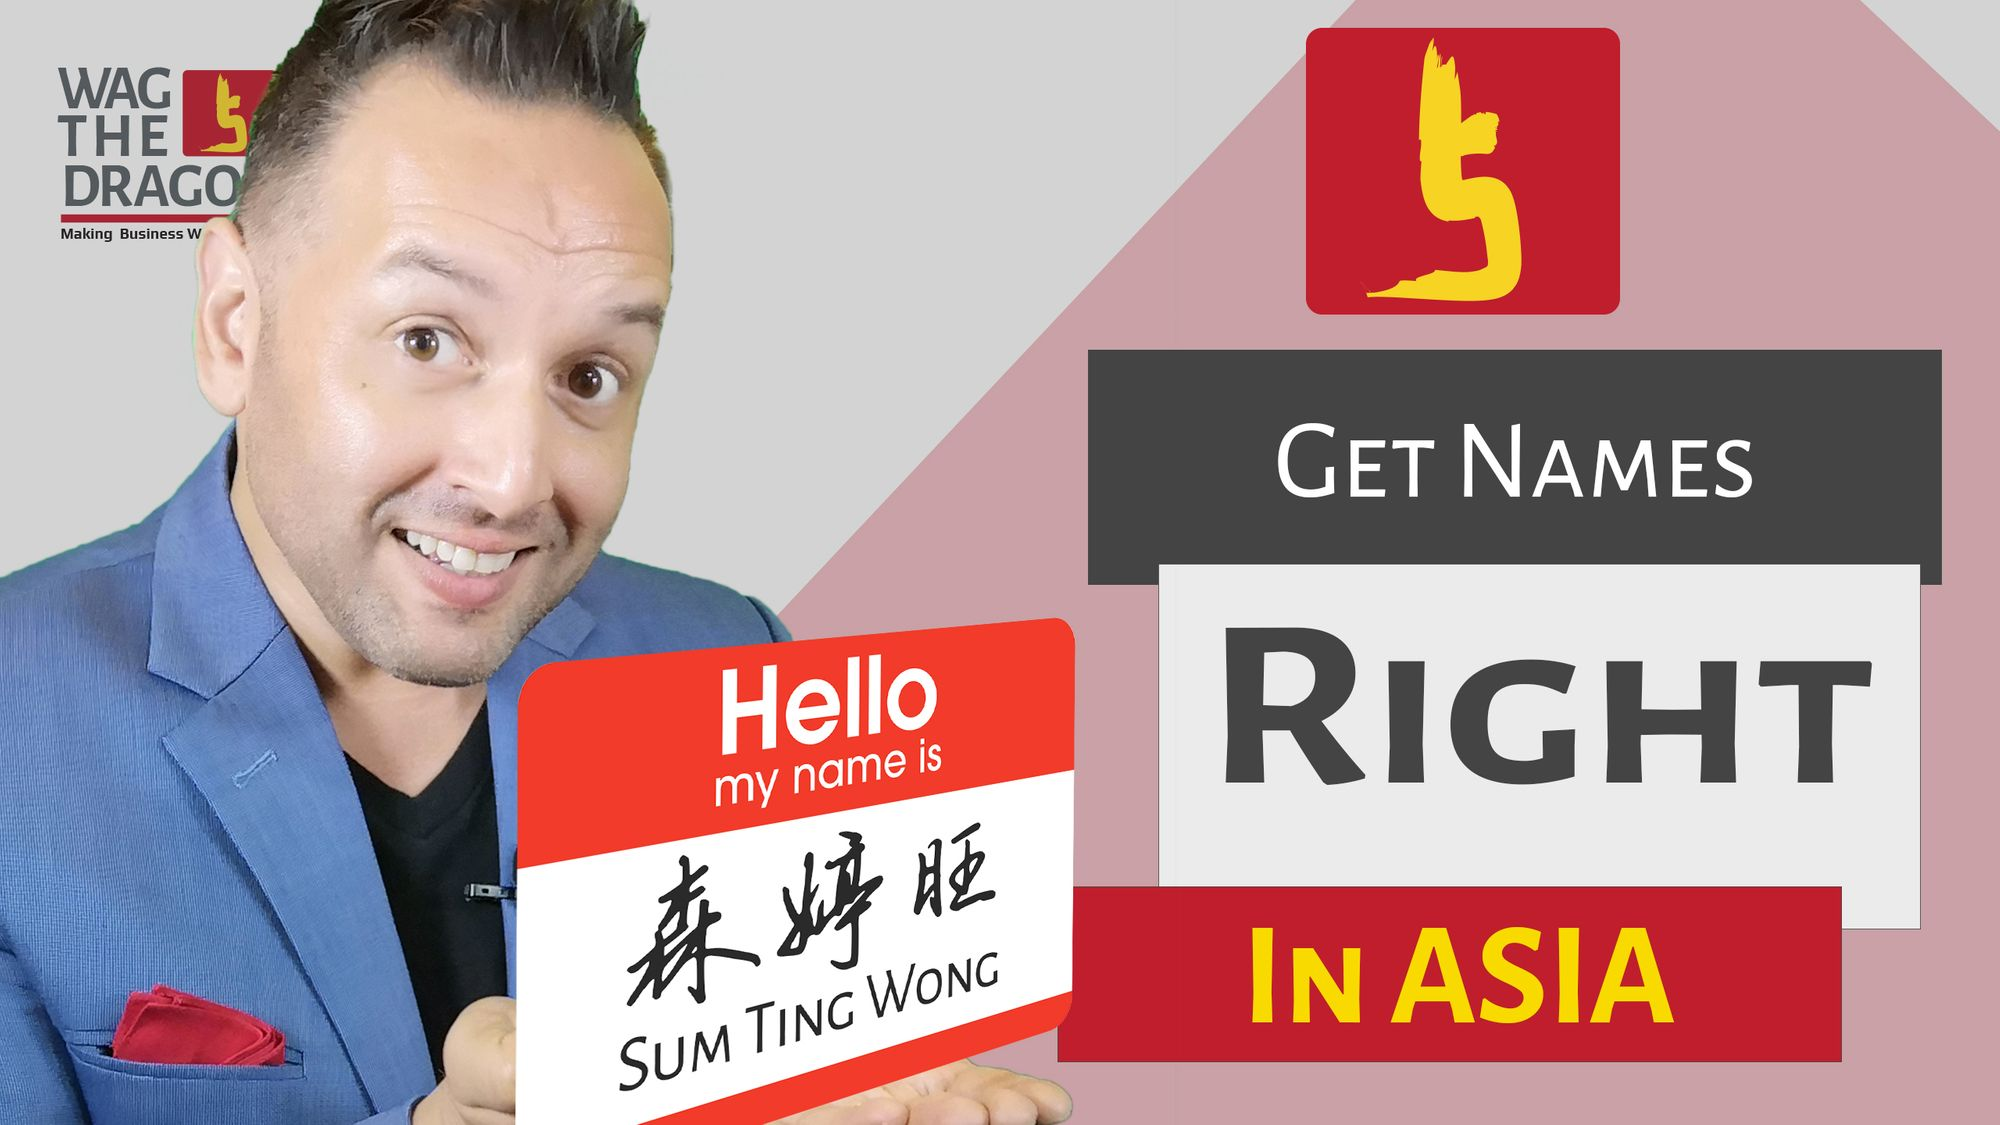 Asian Names - Use them Correctly - Power of Chinese, Thai, Vietnamese and Other Names in Asia